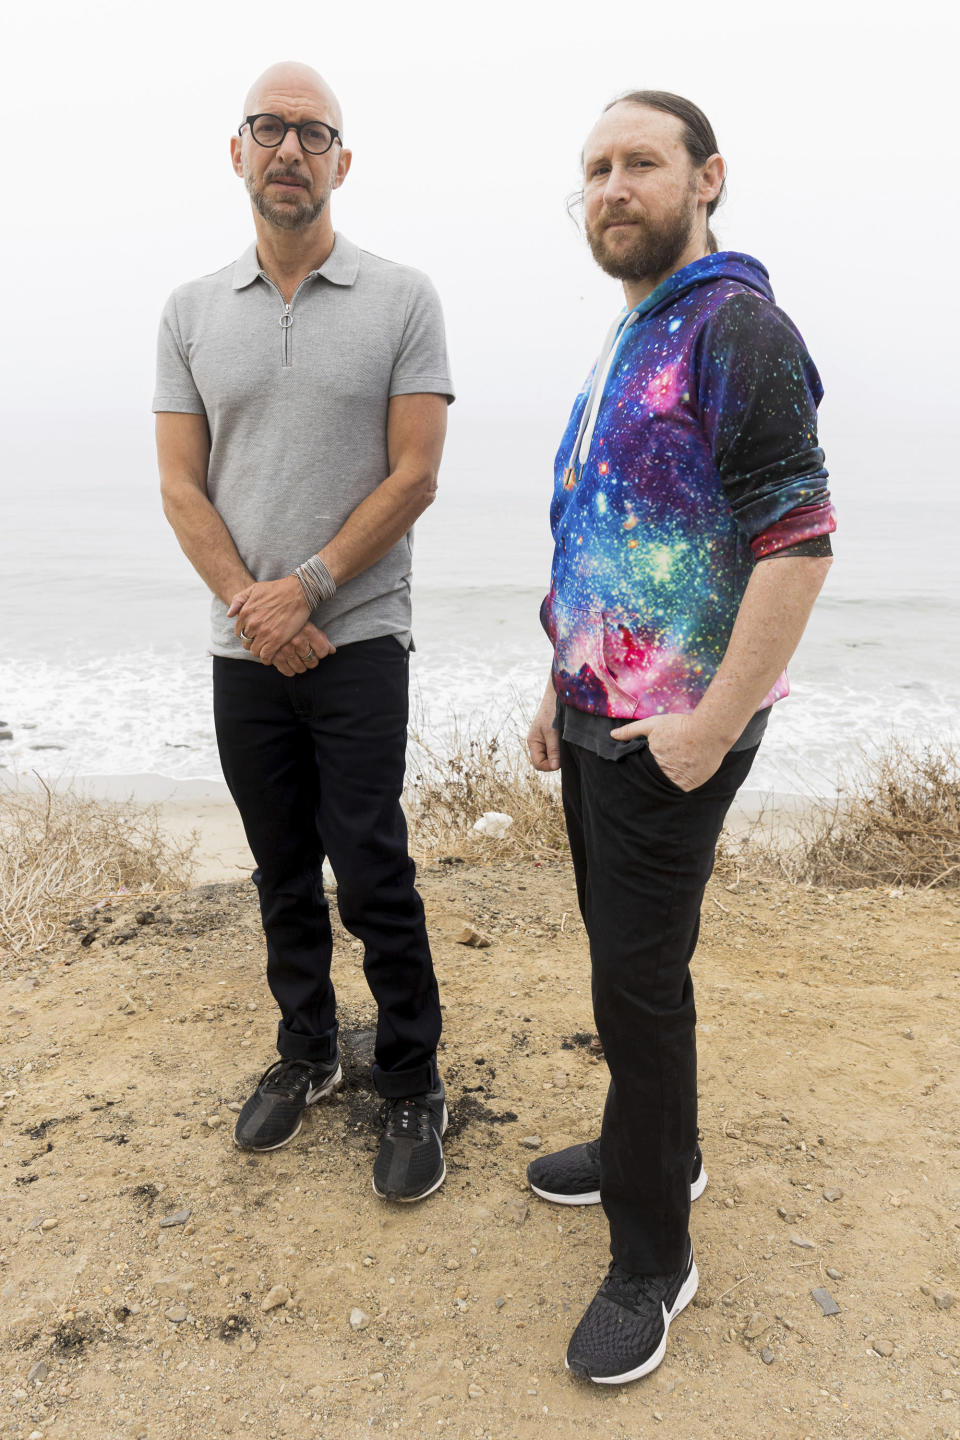 """Author Neil Strauss, left, and Incubus guitarist Mike Einziger, of the podcast """"To Live and Die in LA,"""" pose for a portrait on Thursday, June 17, 2021, in Malibu, Calif. Strauss is back with a second season of his podcast, focusing on the 2017 disappearance of Elaine Park, a 20-year-old woman last seen in Calabasas, California. (Photo by Willy Sanjuan/Invision/AP)"""